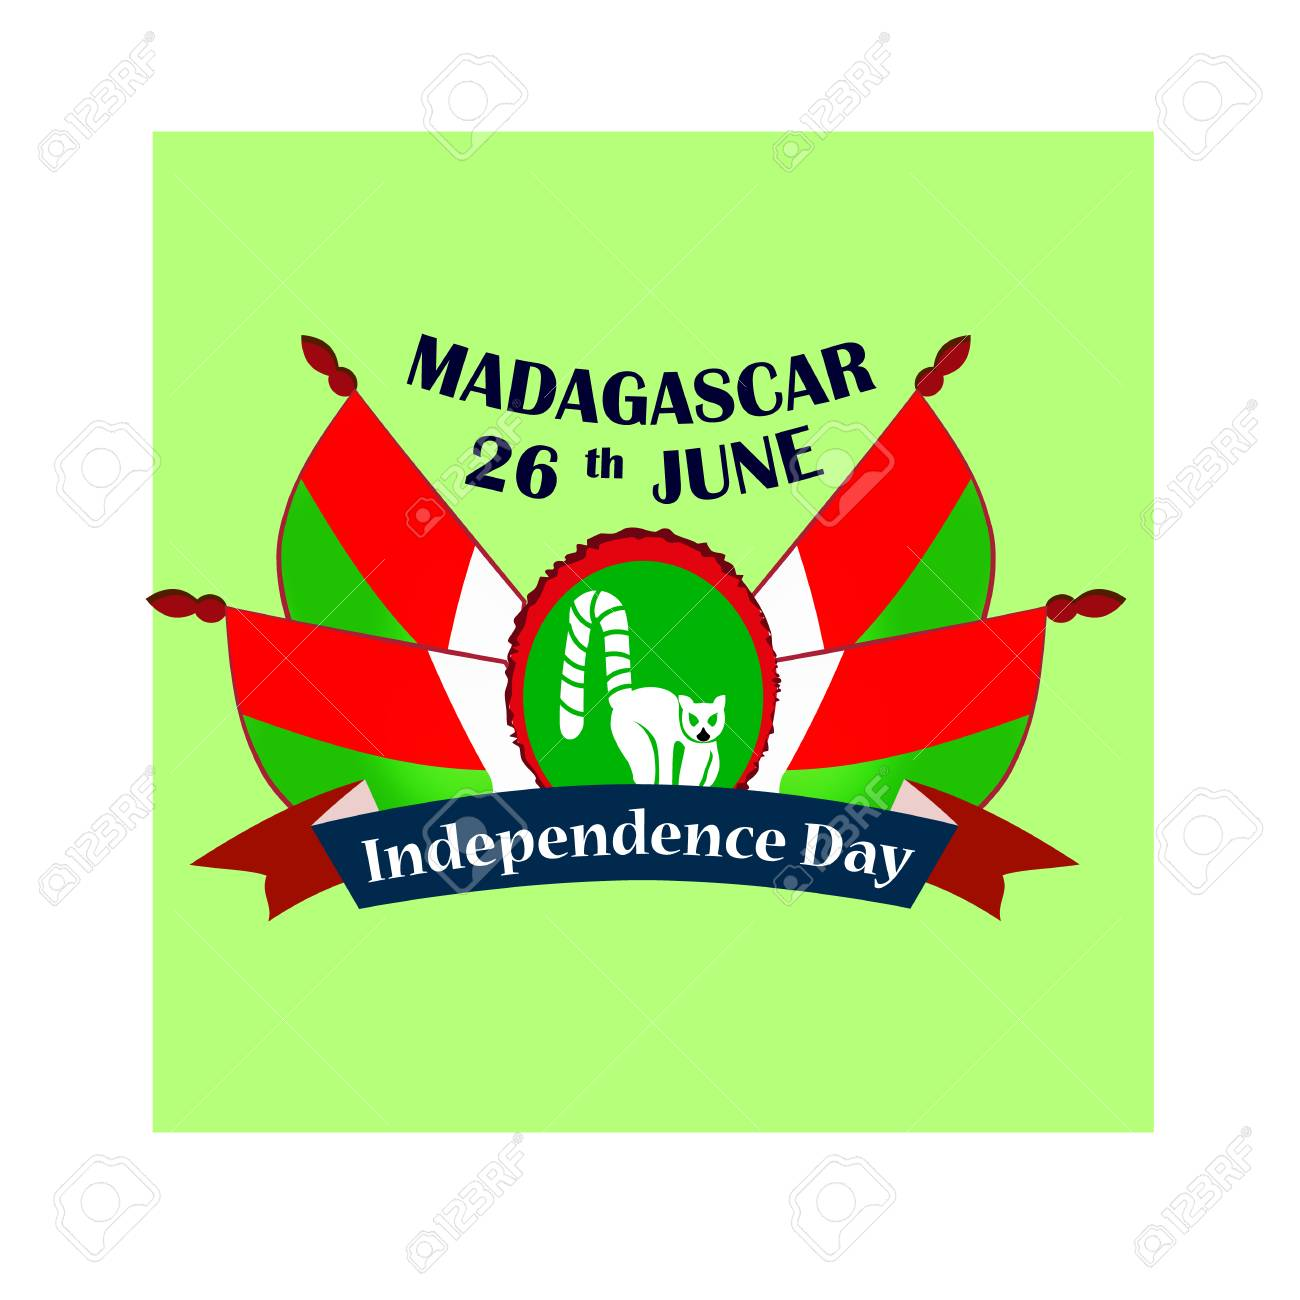 Independence Day of Madagascar, illustration with national flags - 103984246